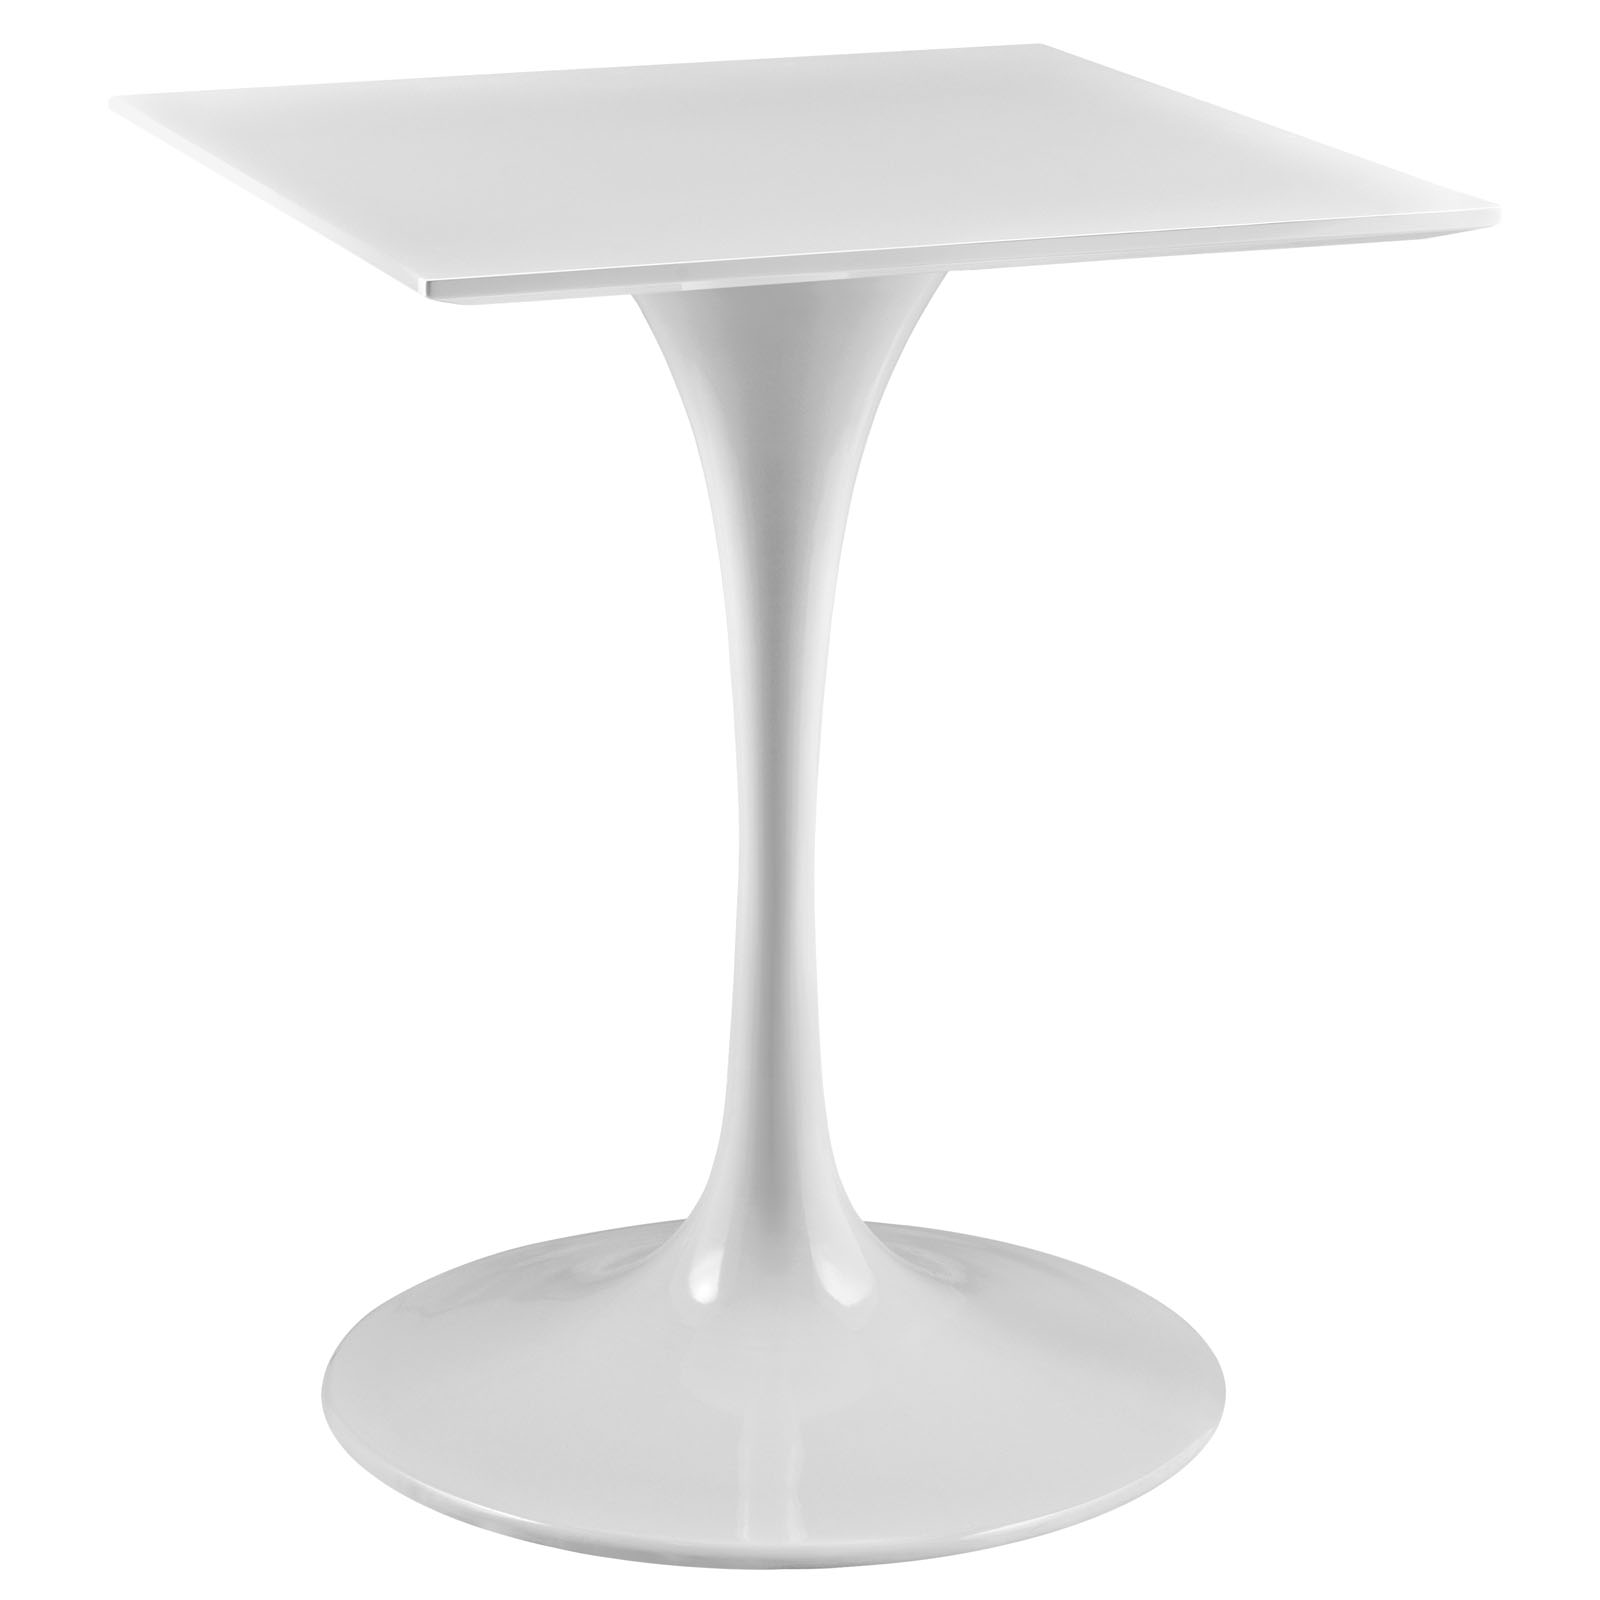 Tulip Table Square Top Pedestal Table Home and fice Furniture